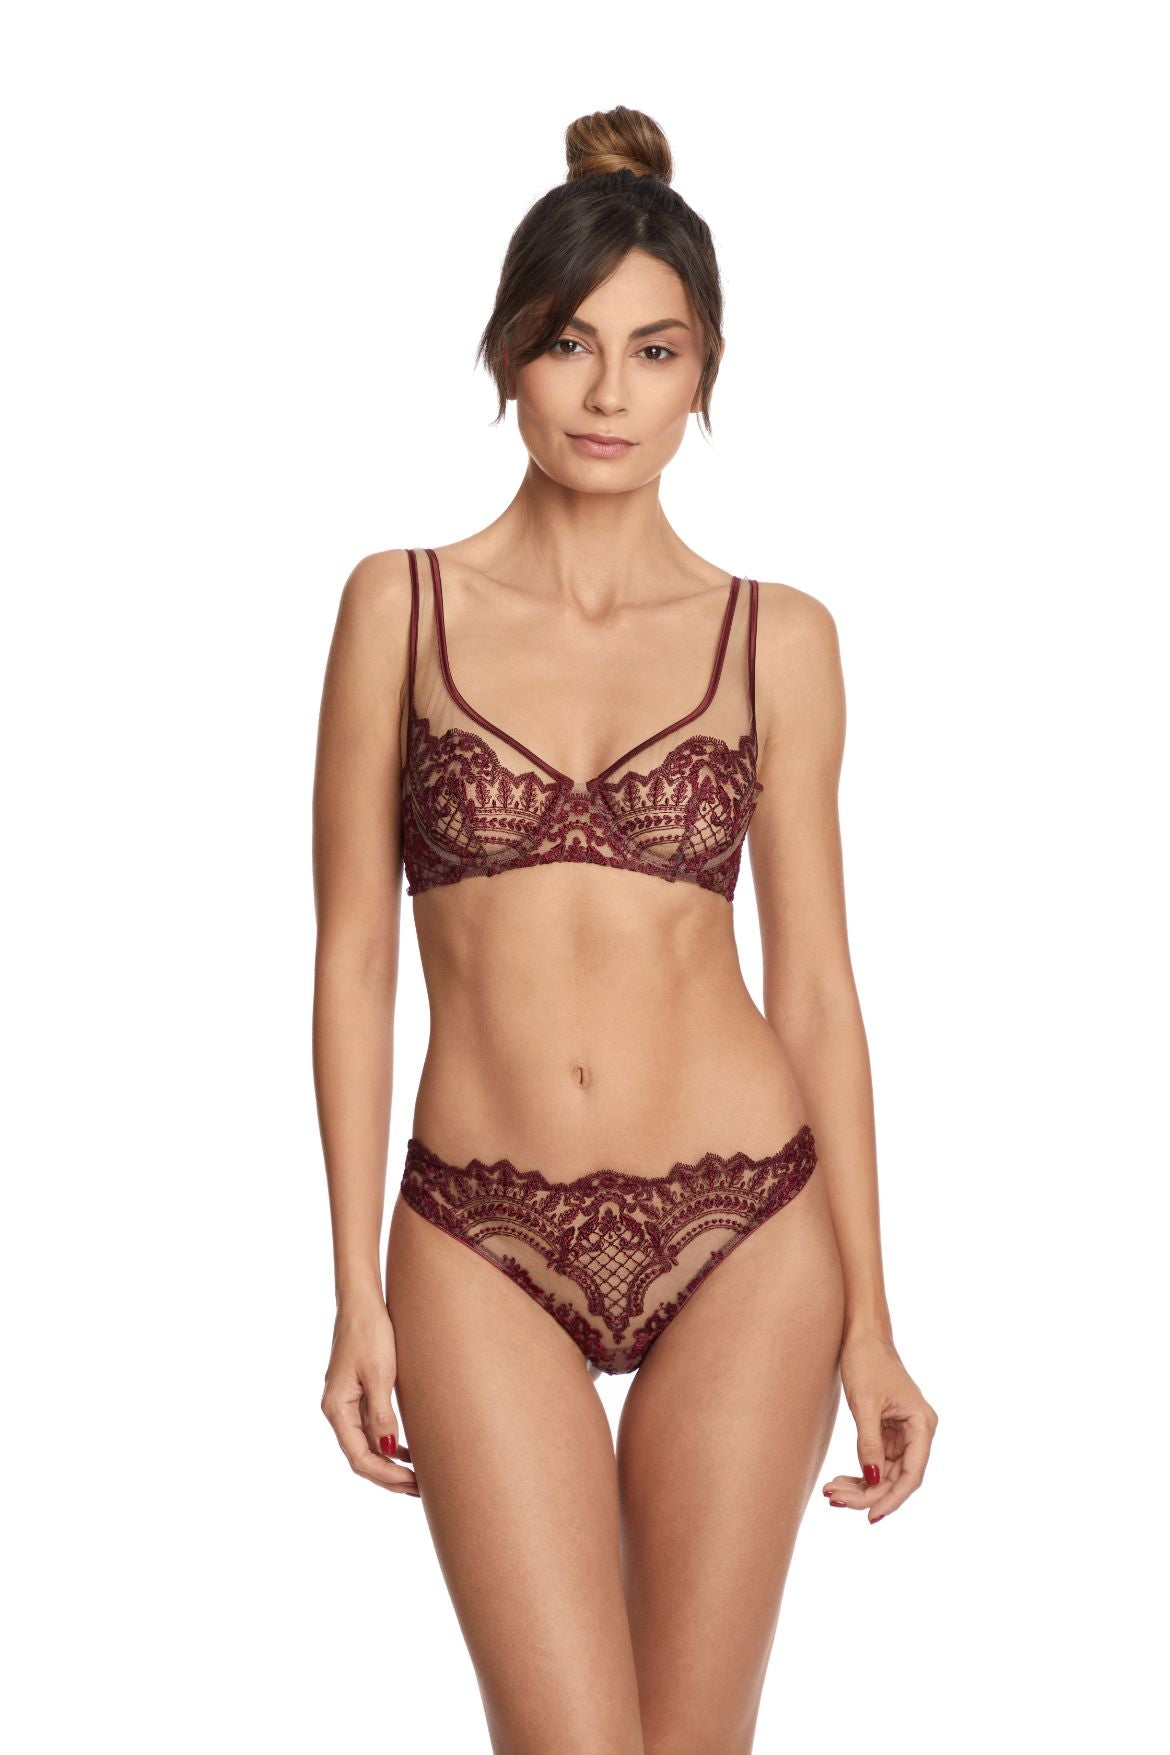 I.D. Sarrieri embroidered tulle and silk bordeaux underwired full cup bra and brief